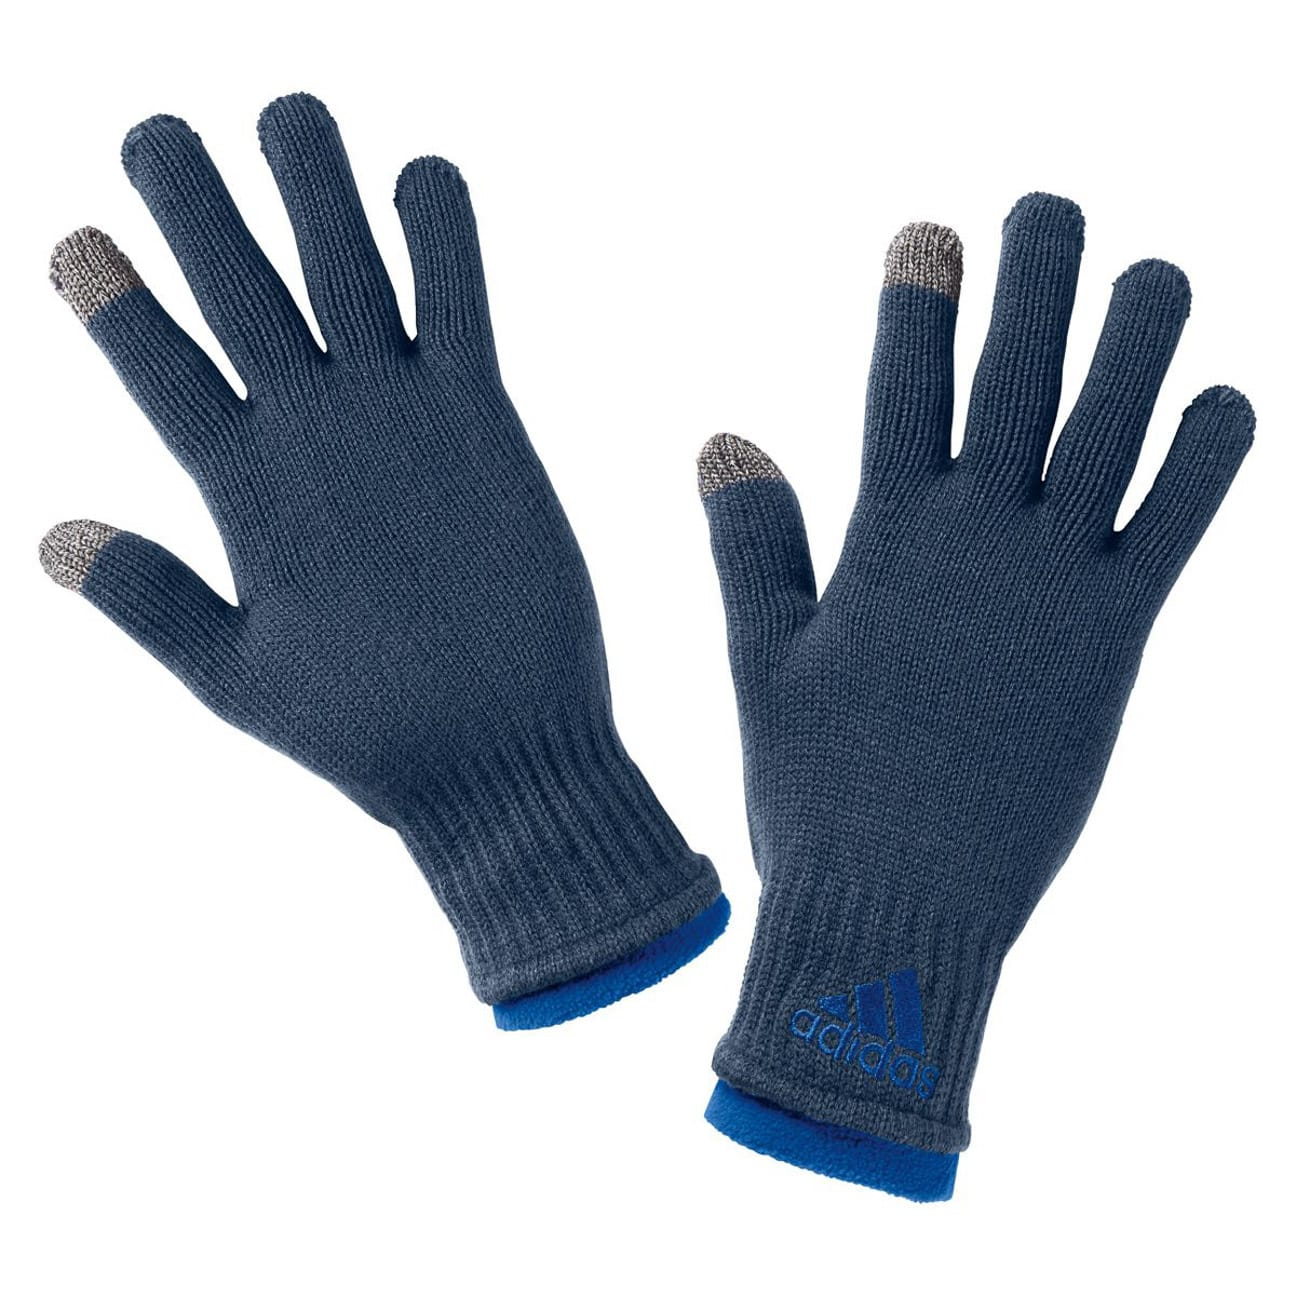 Sport Gloves Uk: Winter Sport Gloves By Adidas, GBP 9,95 --> Hats, Caps